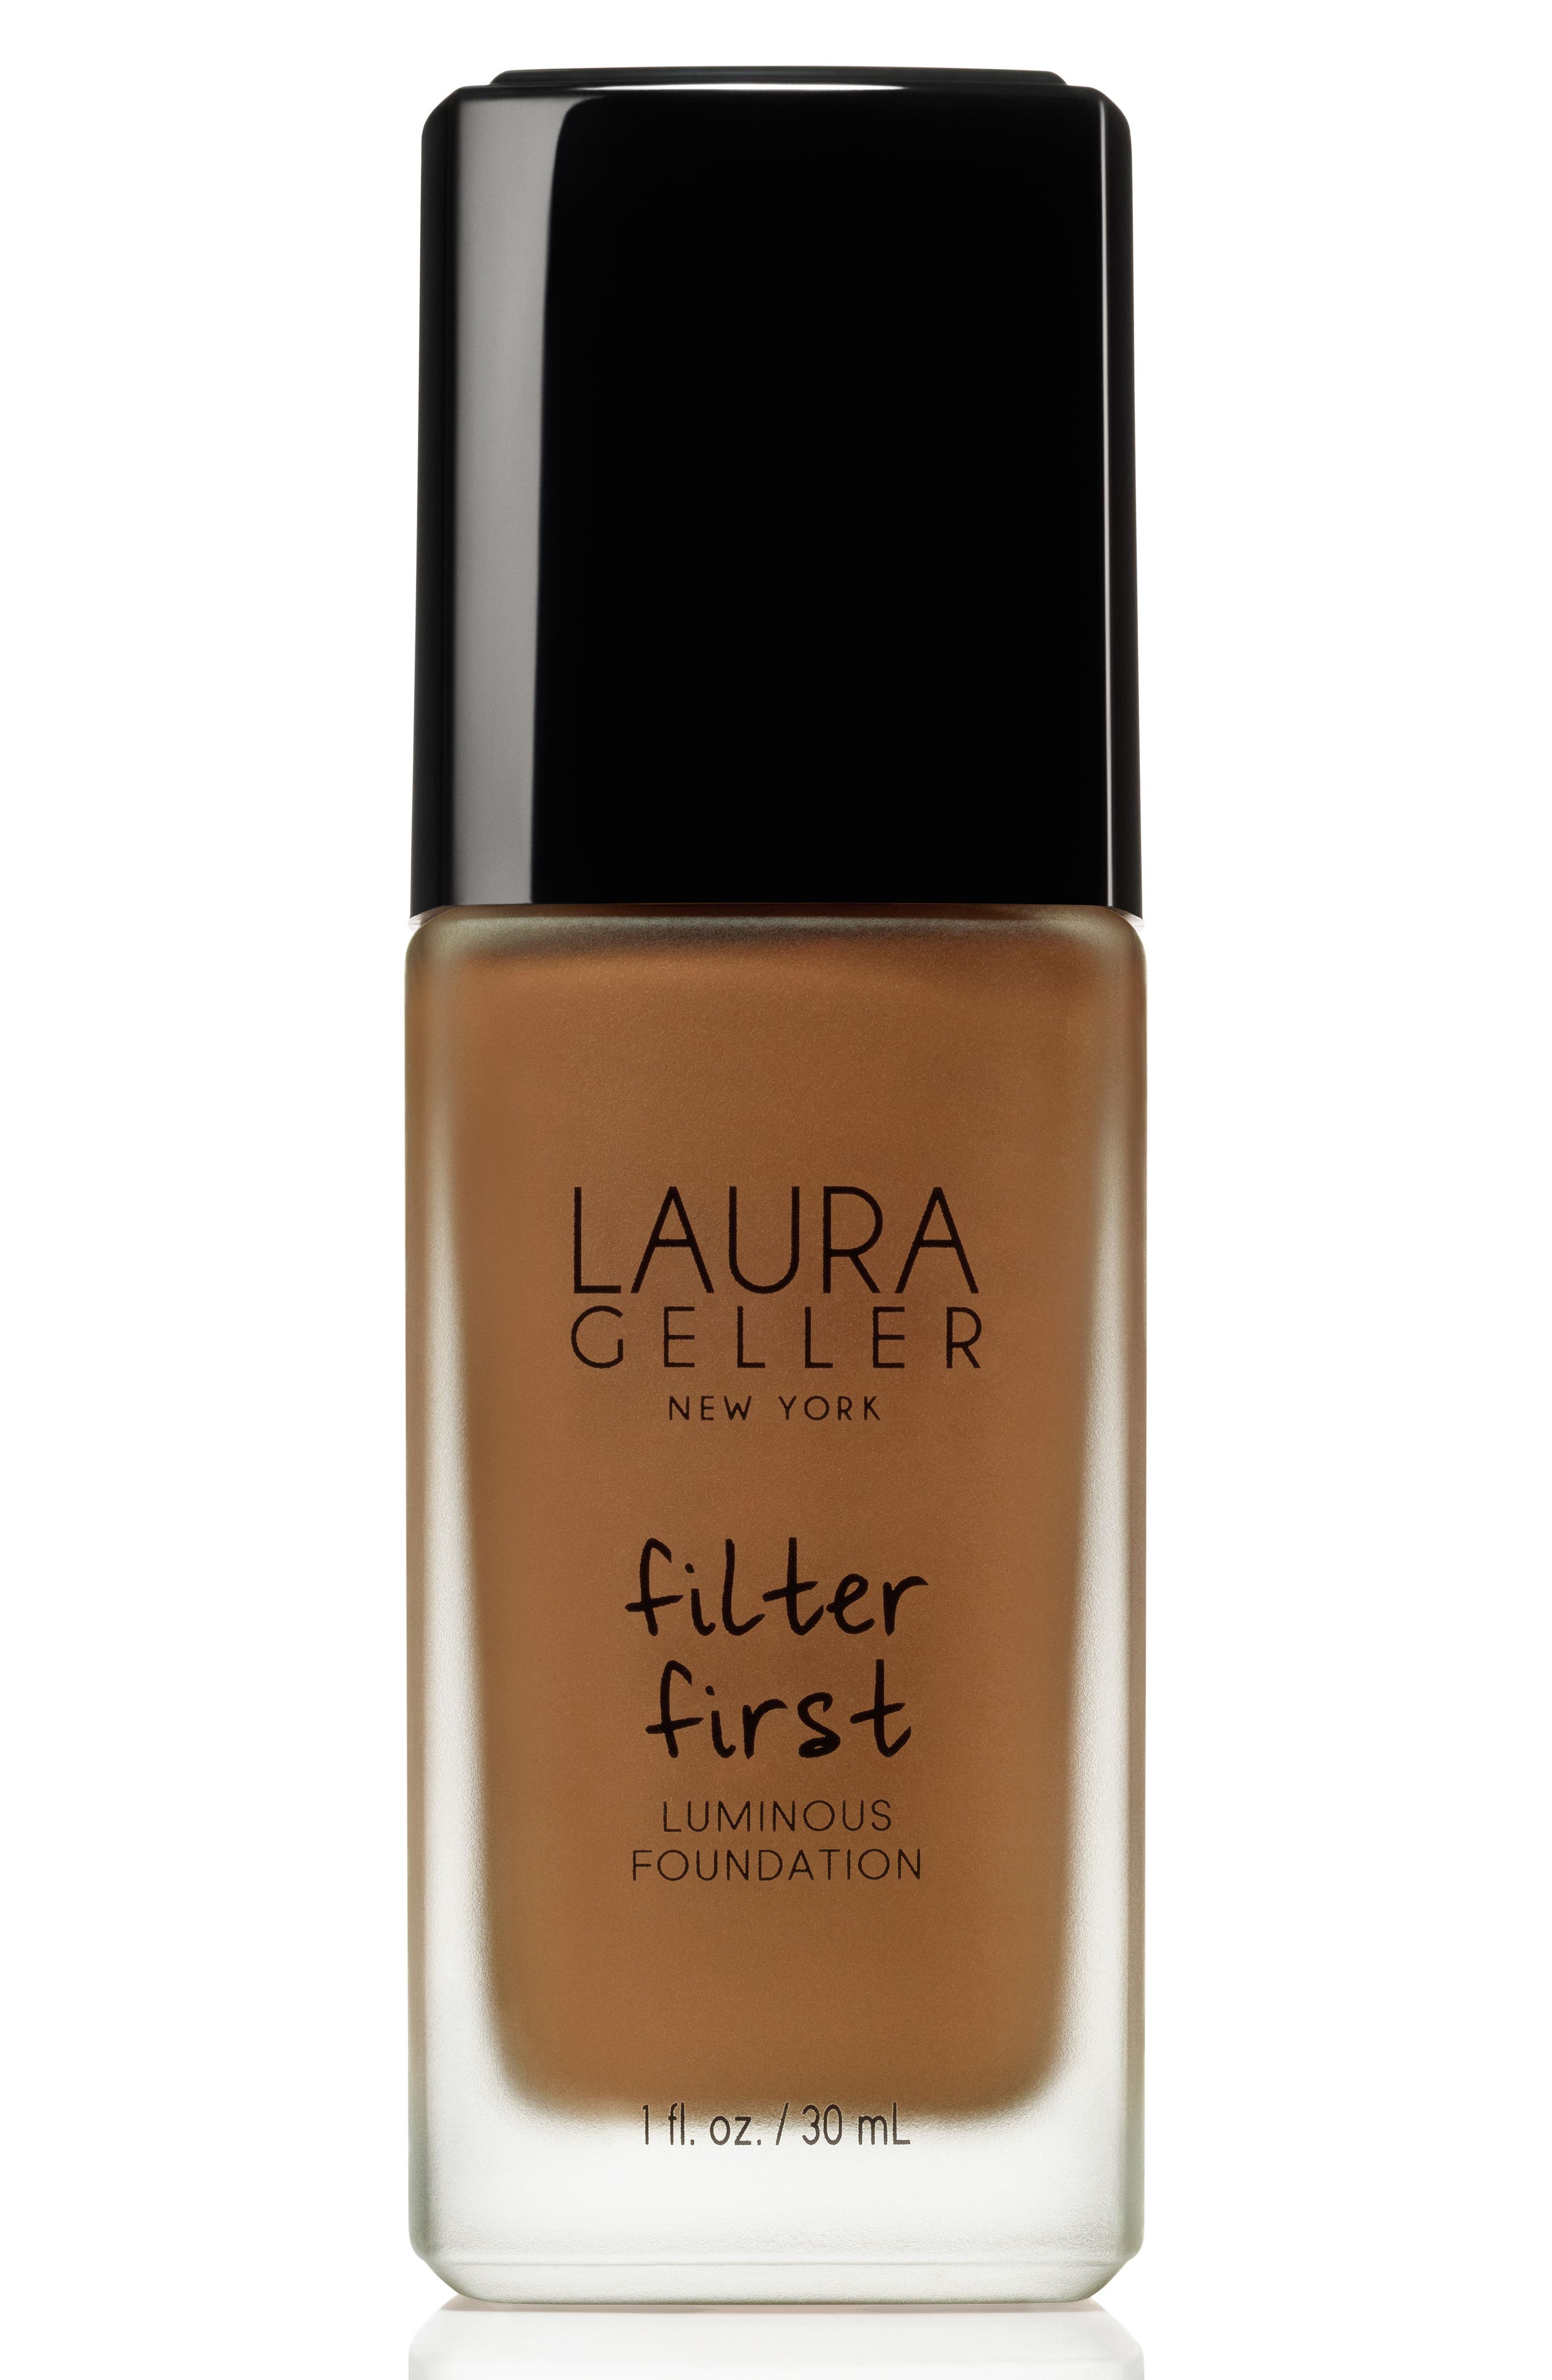 Image of Laura Geller New York Filter First Luminous Foundation - Chestnut